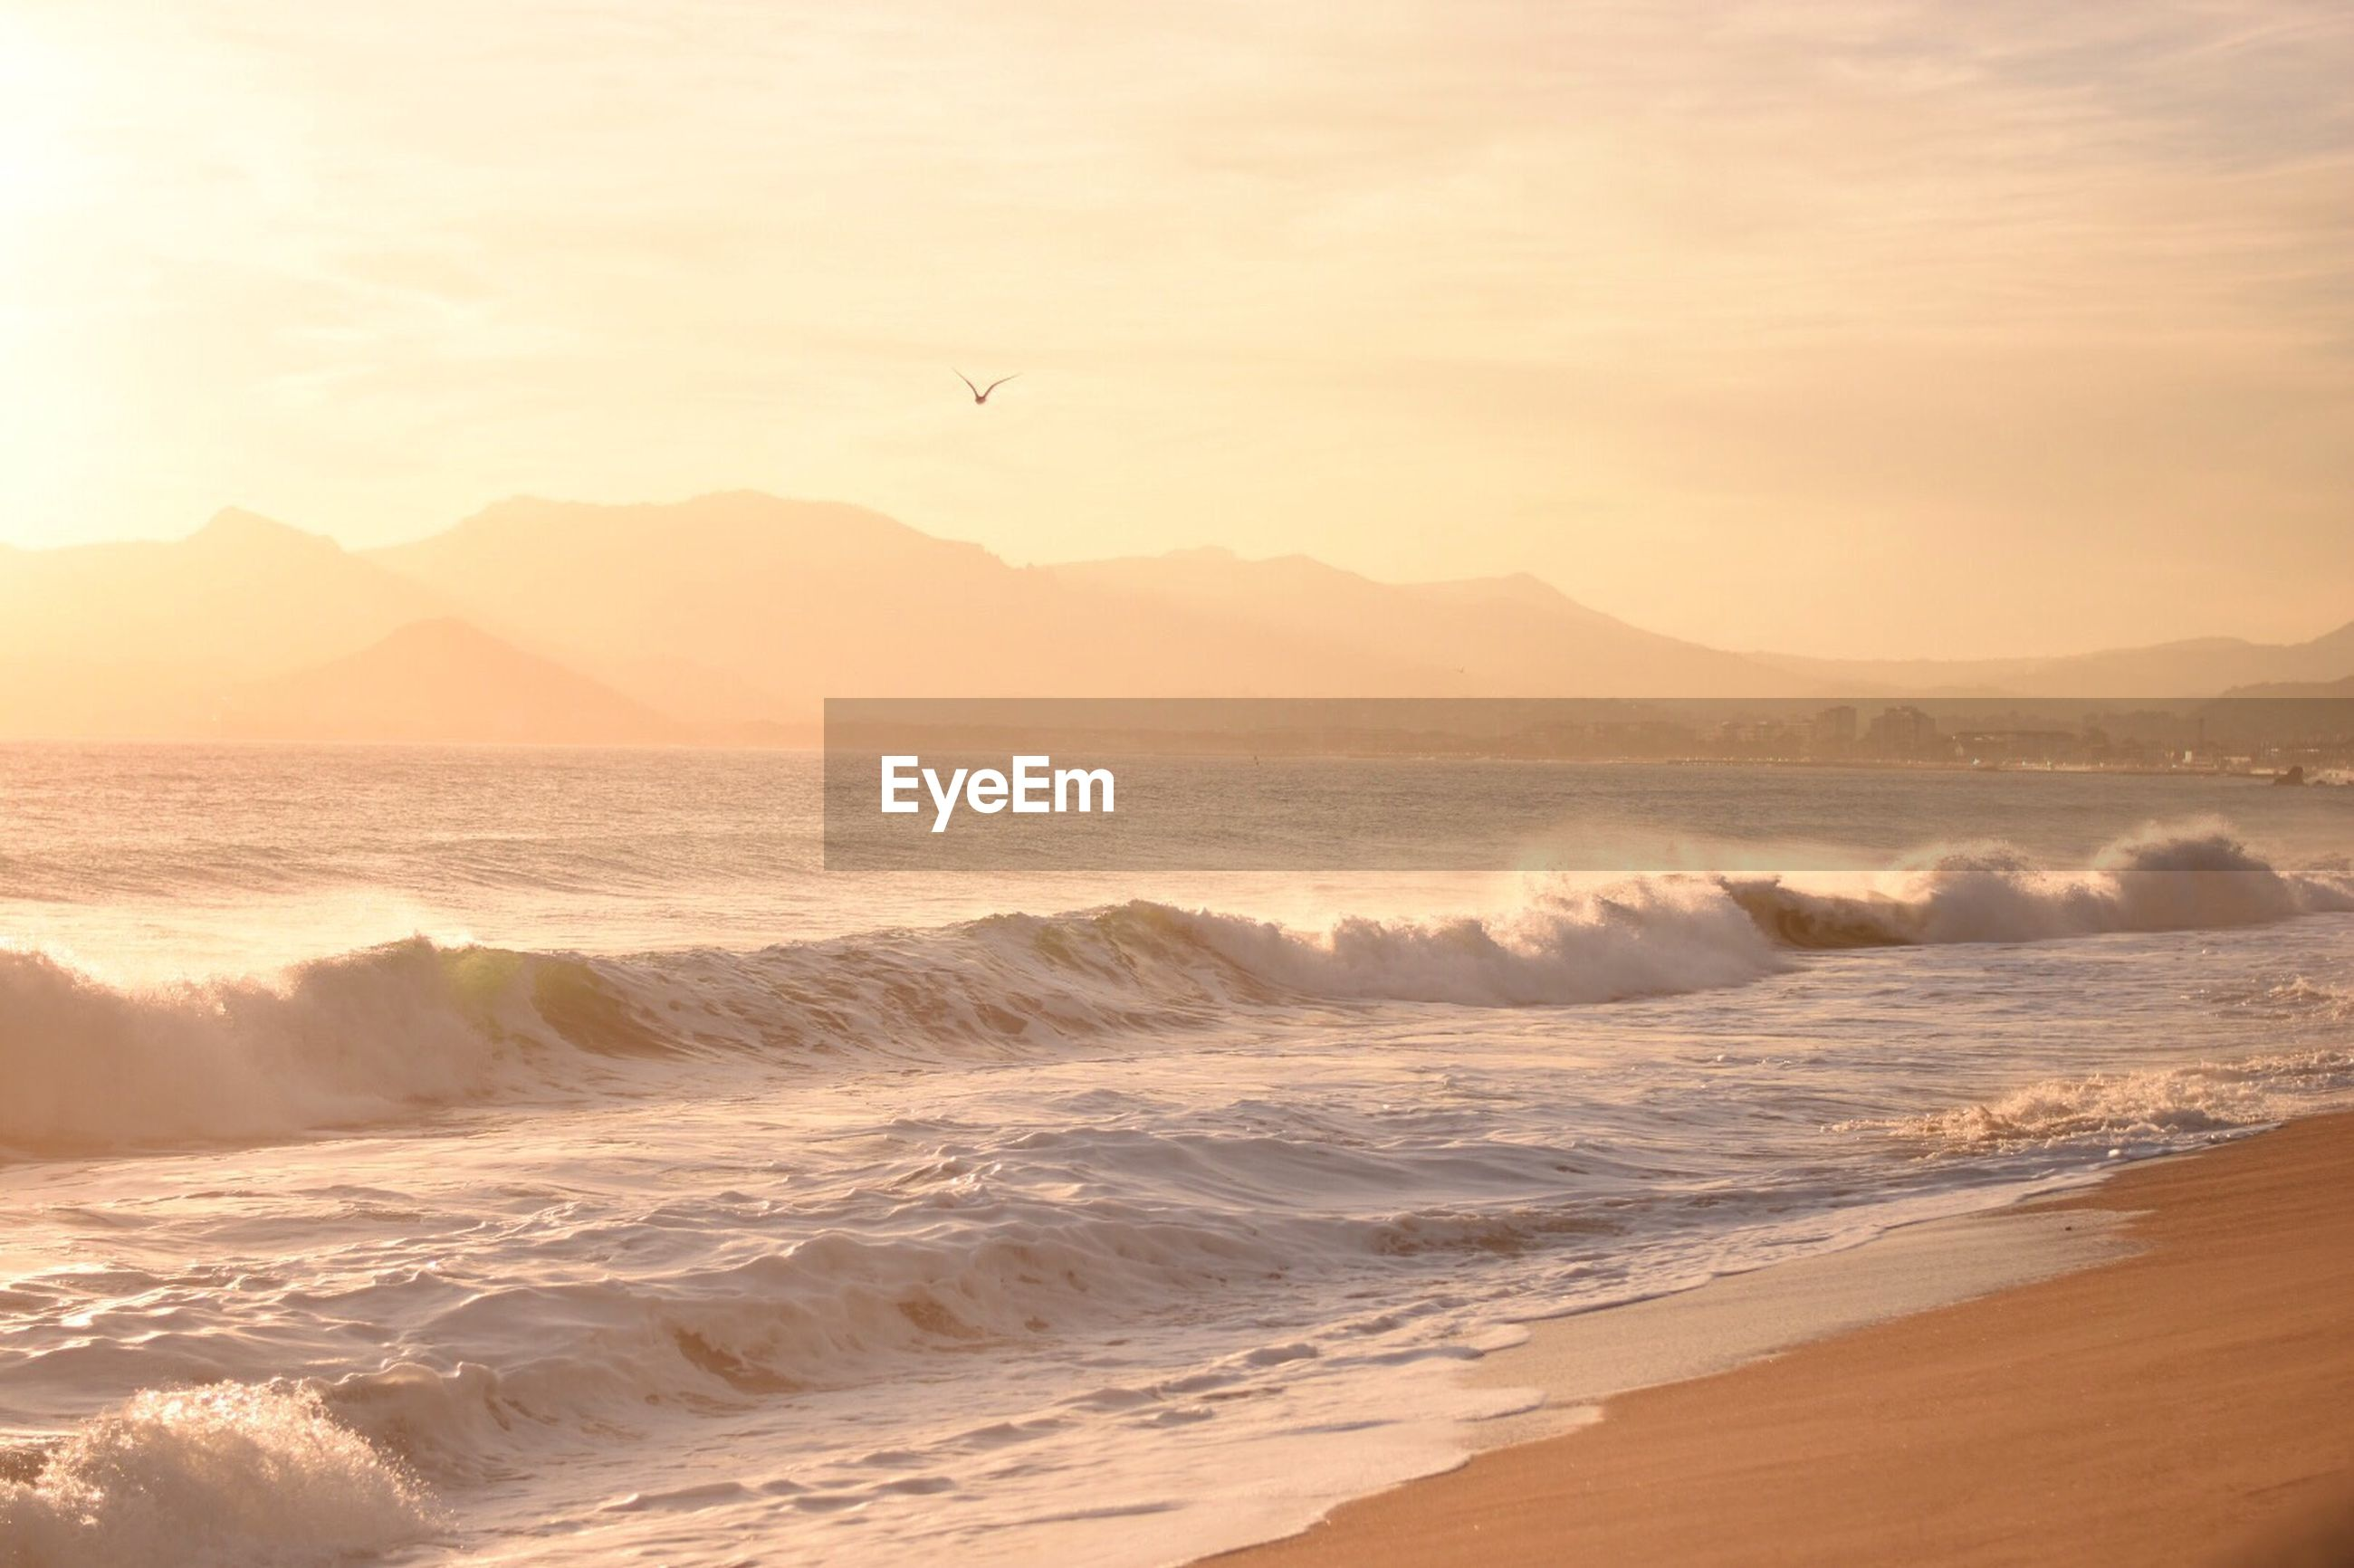 Scenic view of sea by mountains against sky during sunset